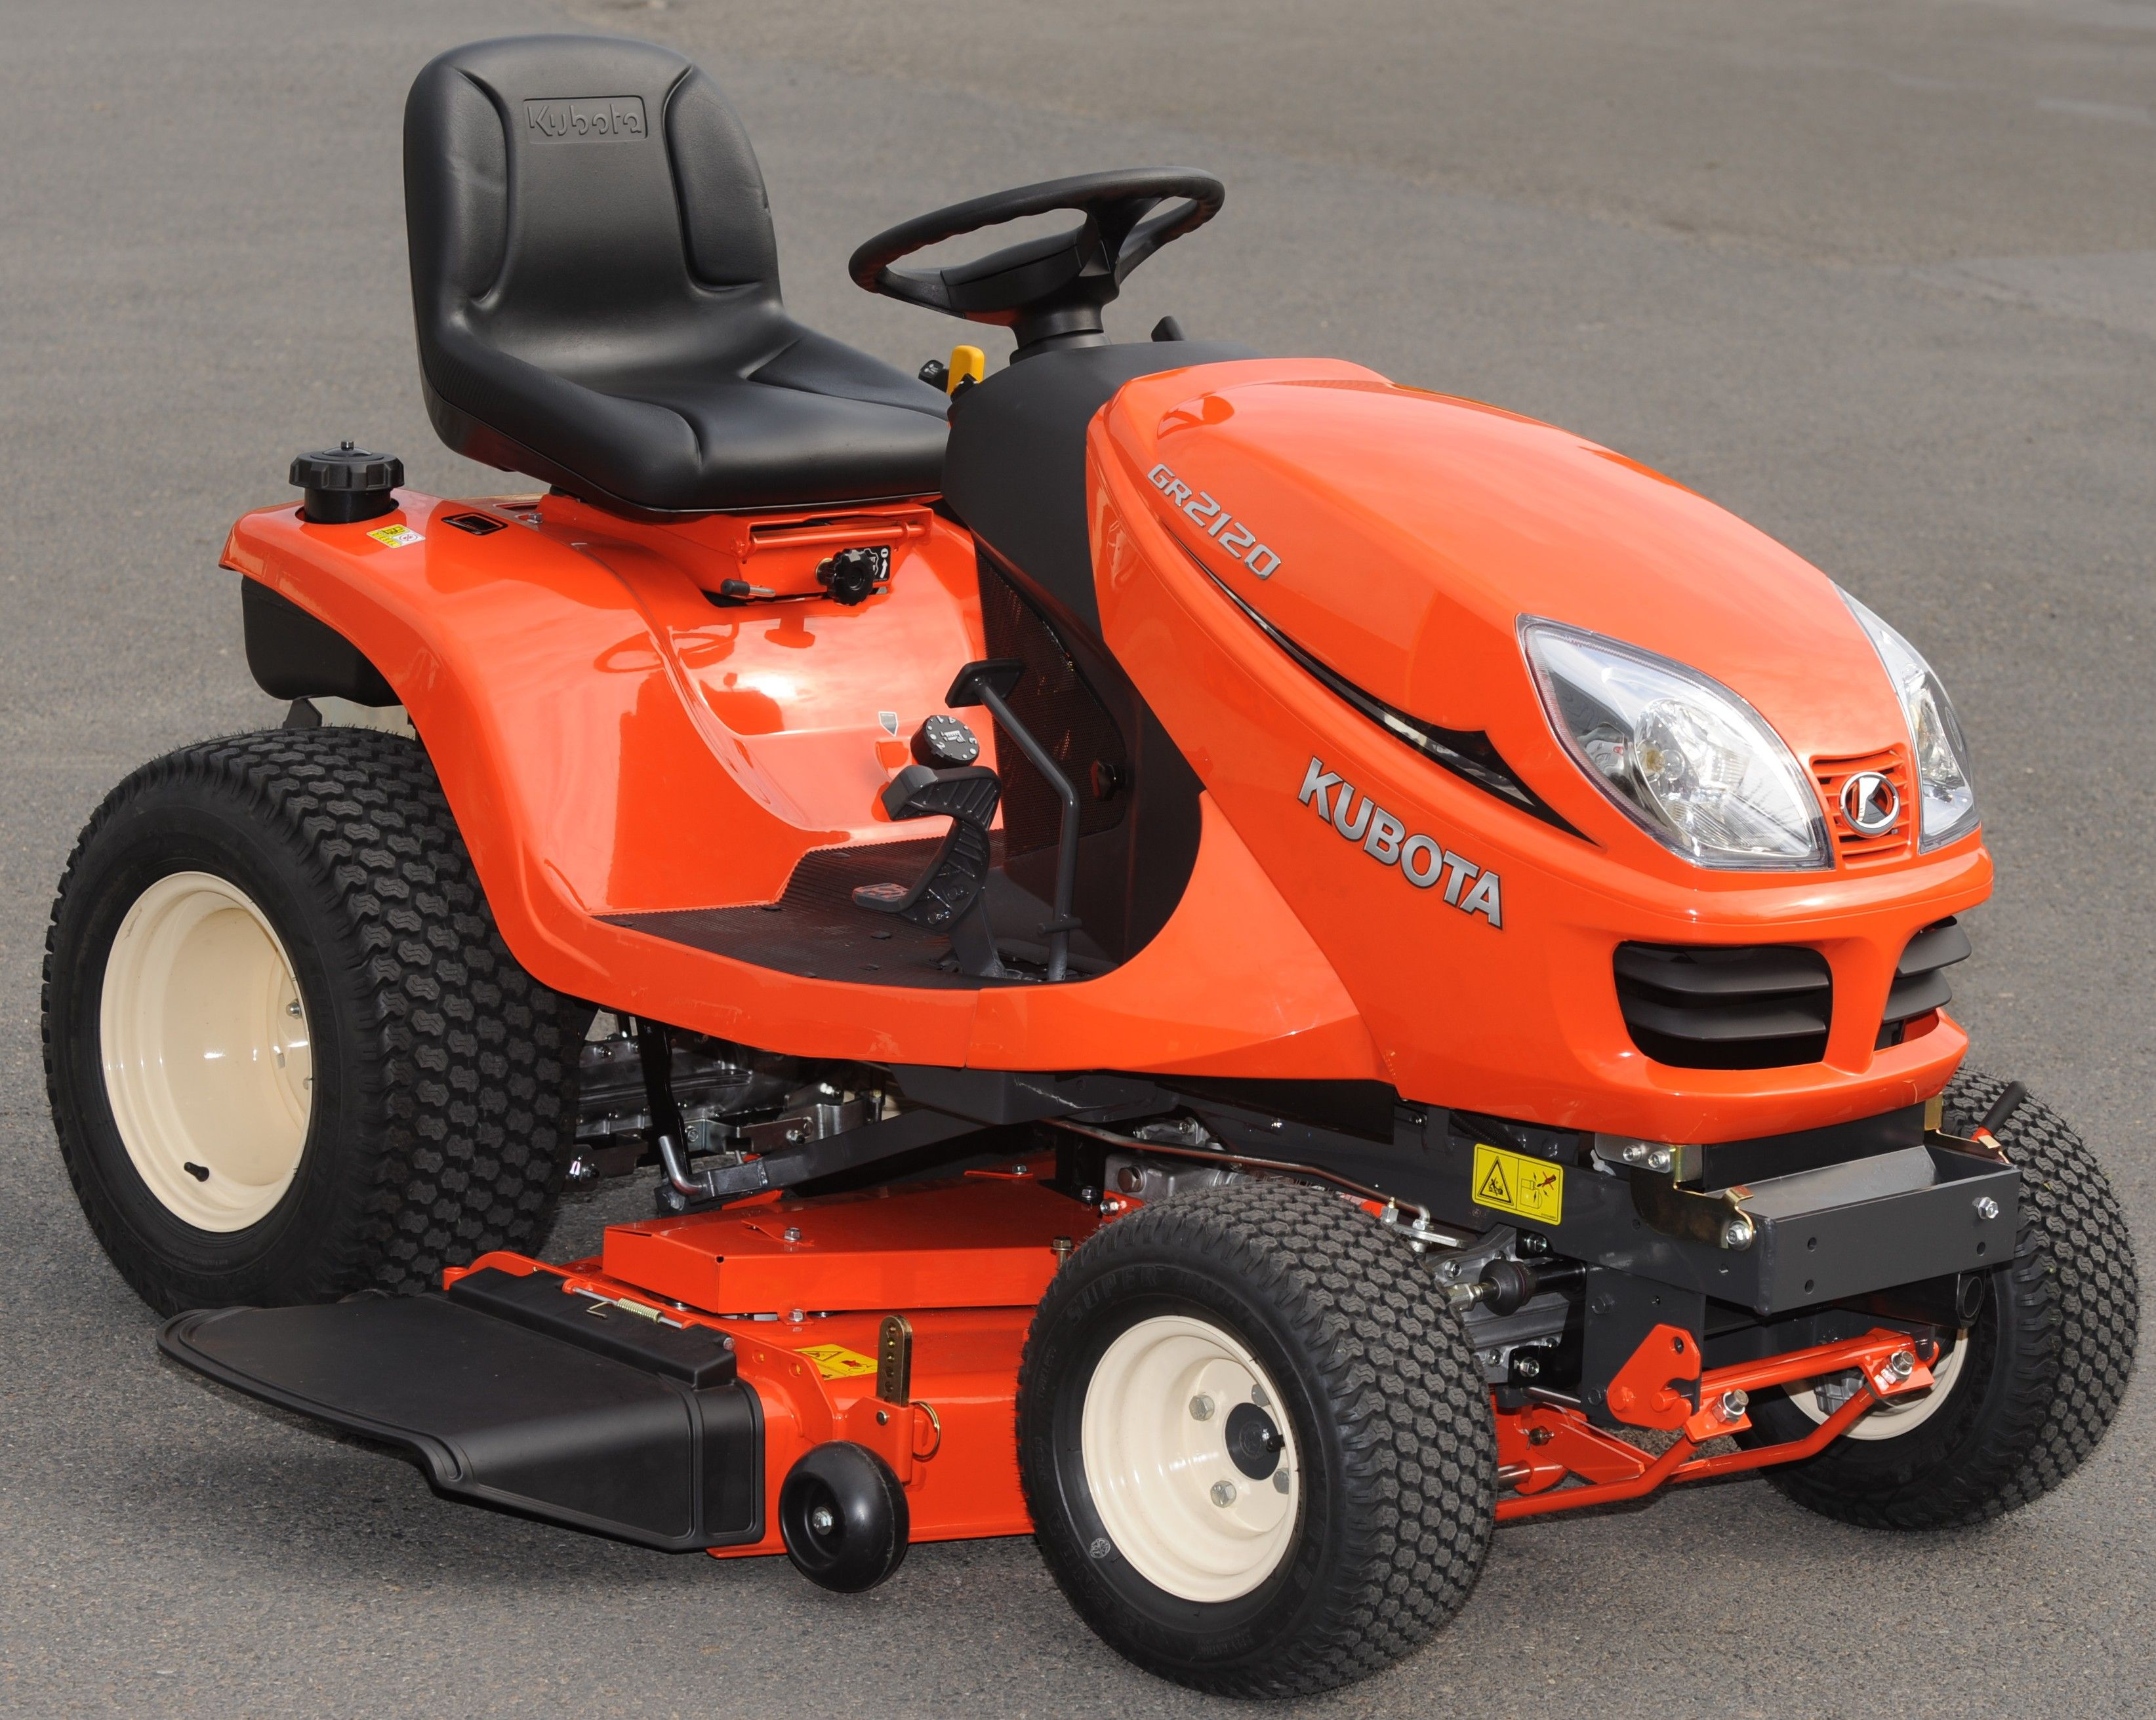 Kubota GR 2120 Riding Mower